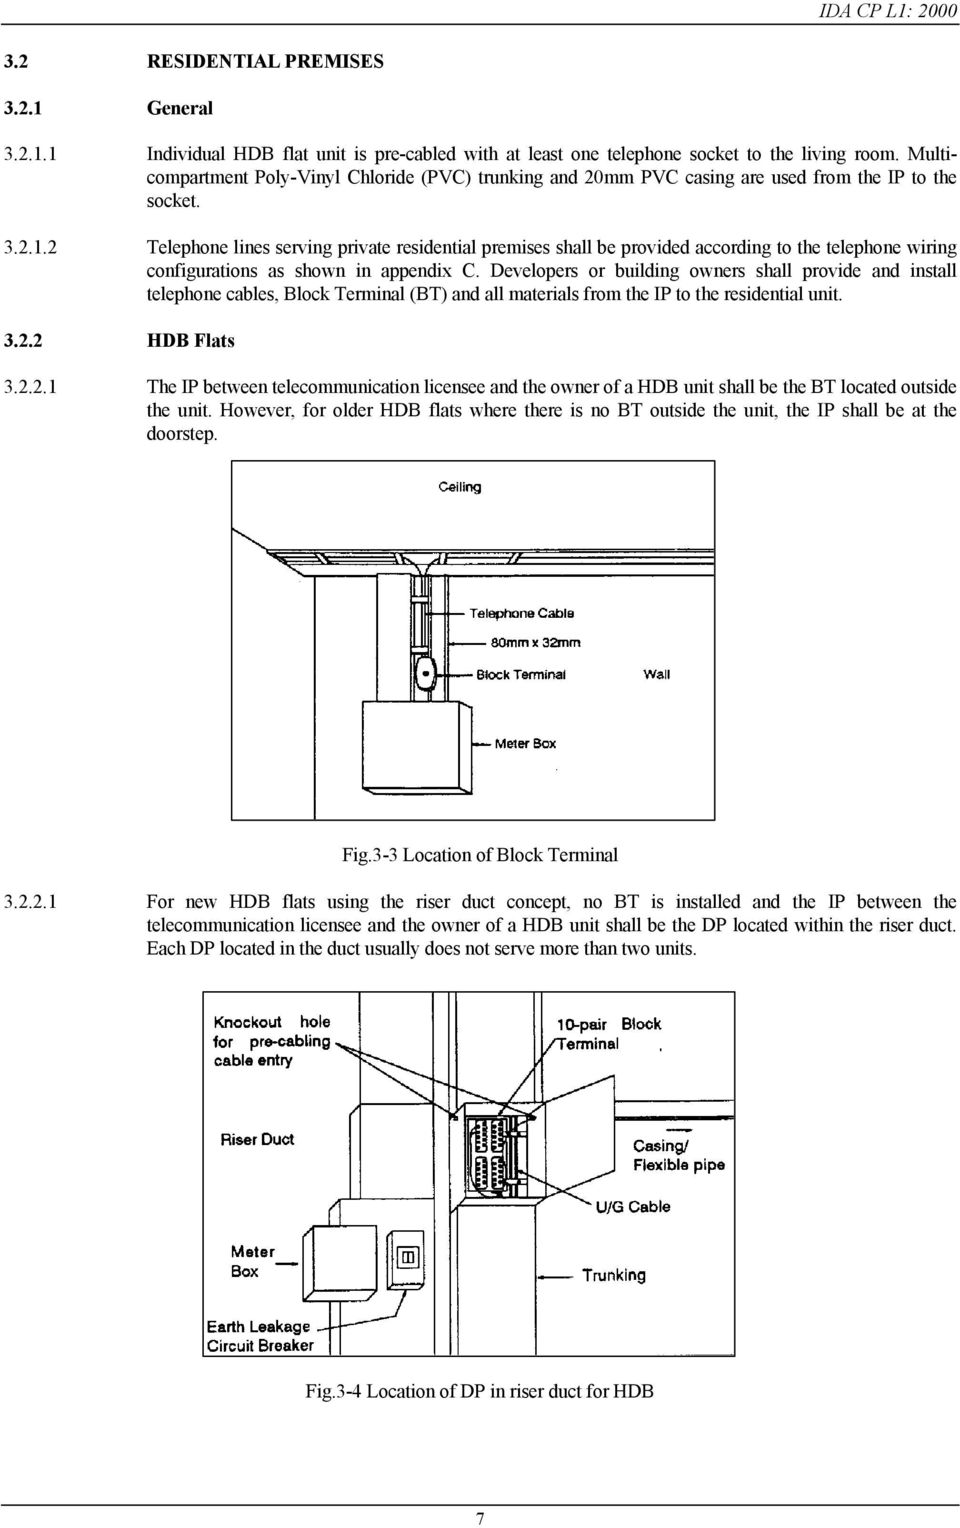 Code Of Practice For Internal Telecommunication Wiring Pdf Diagram Bt Vision 2 Telephone Lines Serving Private Residential Premises Shall Be Provided According To The Configurations